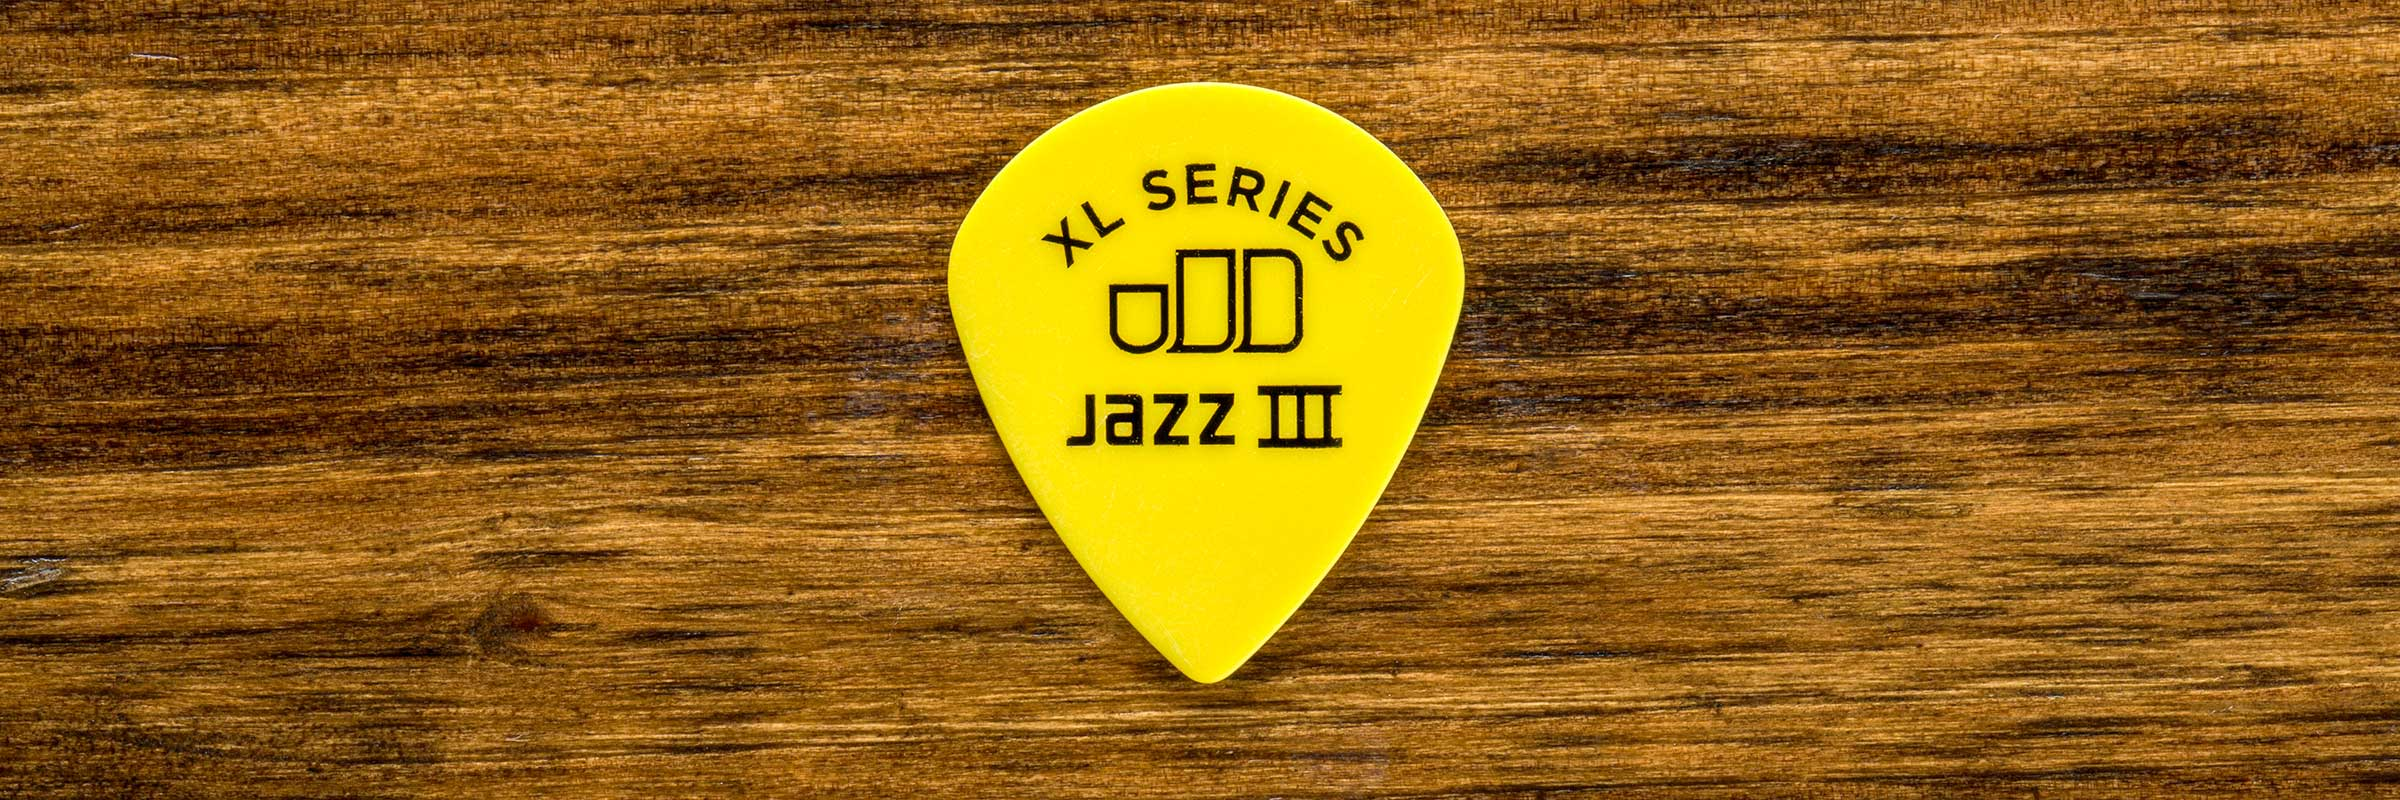 Lifestyle Dunlop How To Make A Circuit Board Guitar Pick Jazz Iii Xl